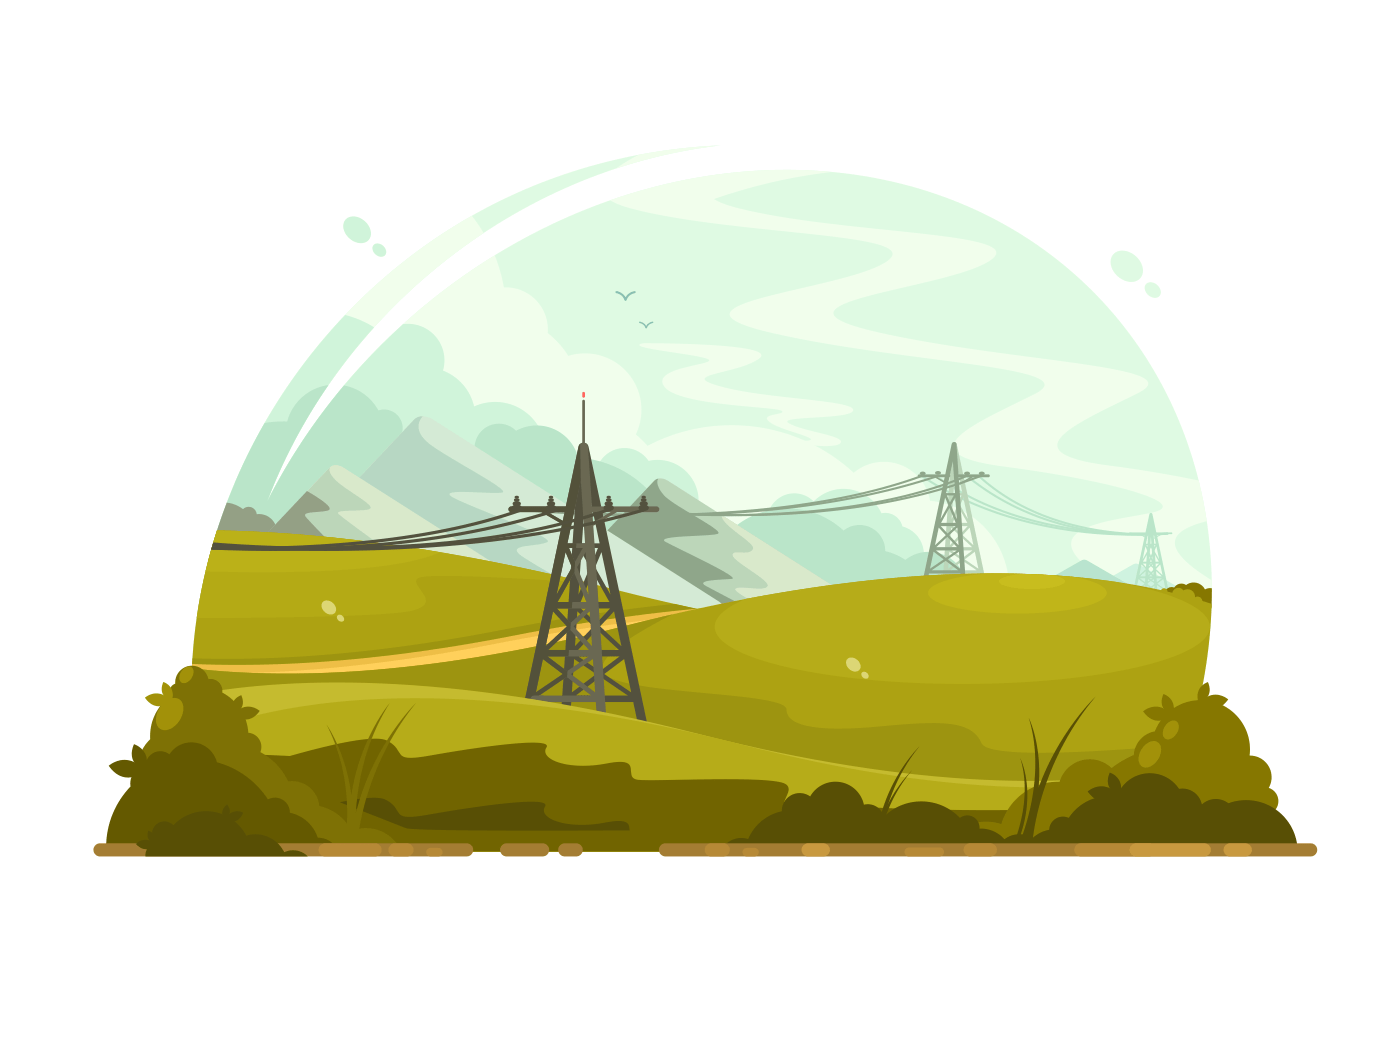 Power lines electricity illustration